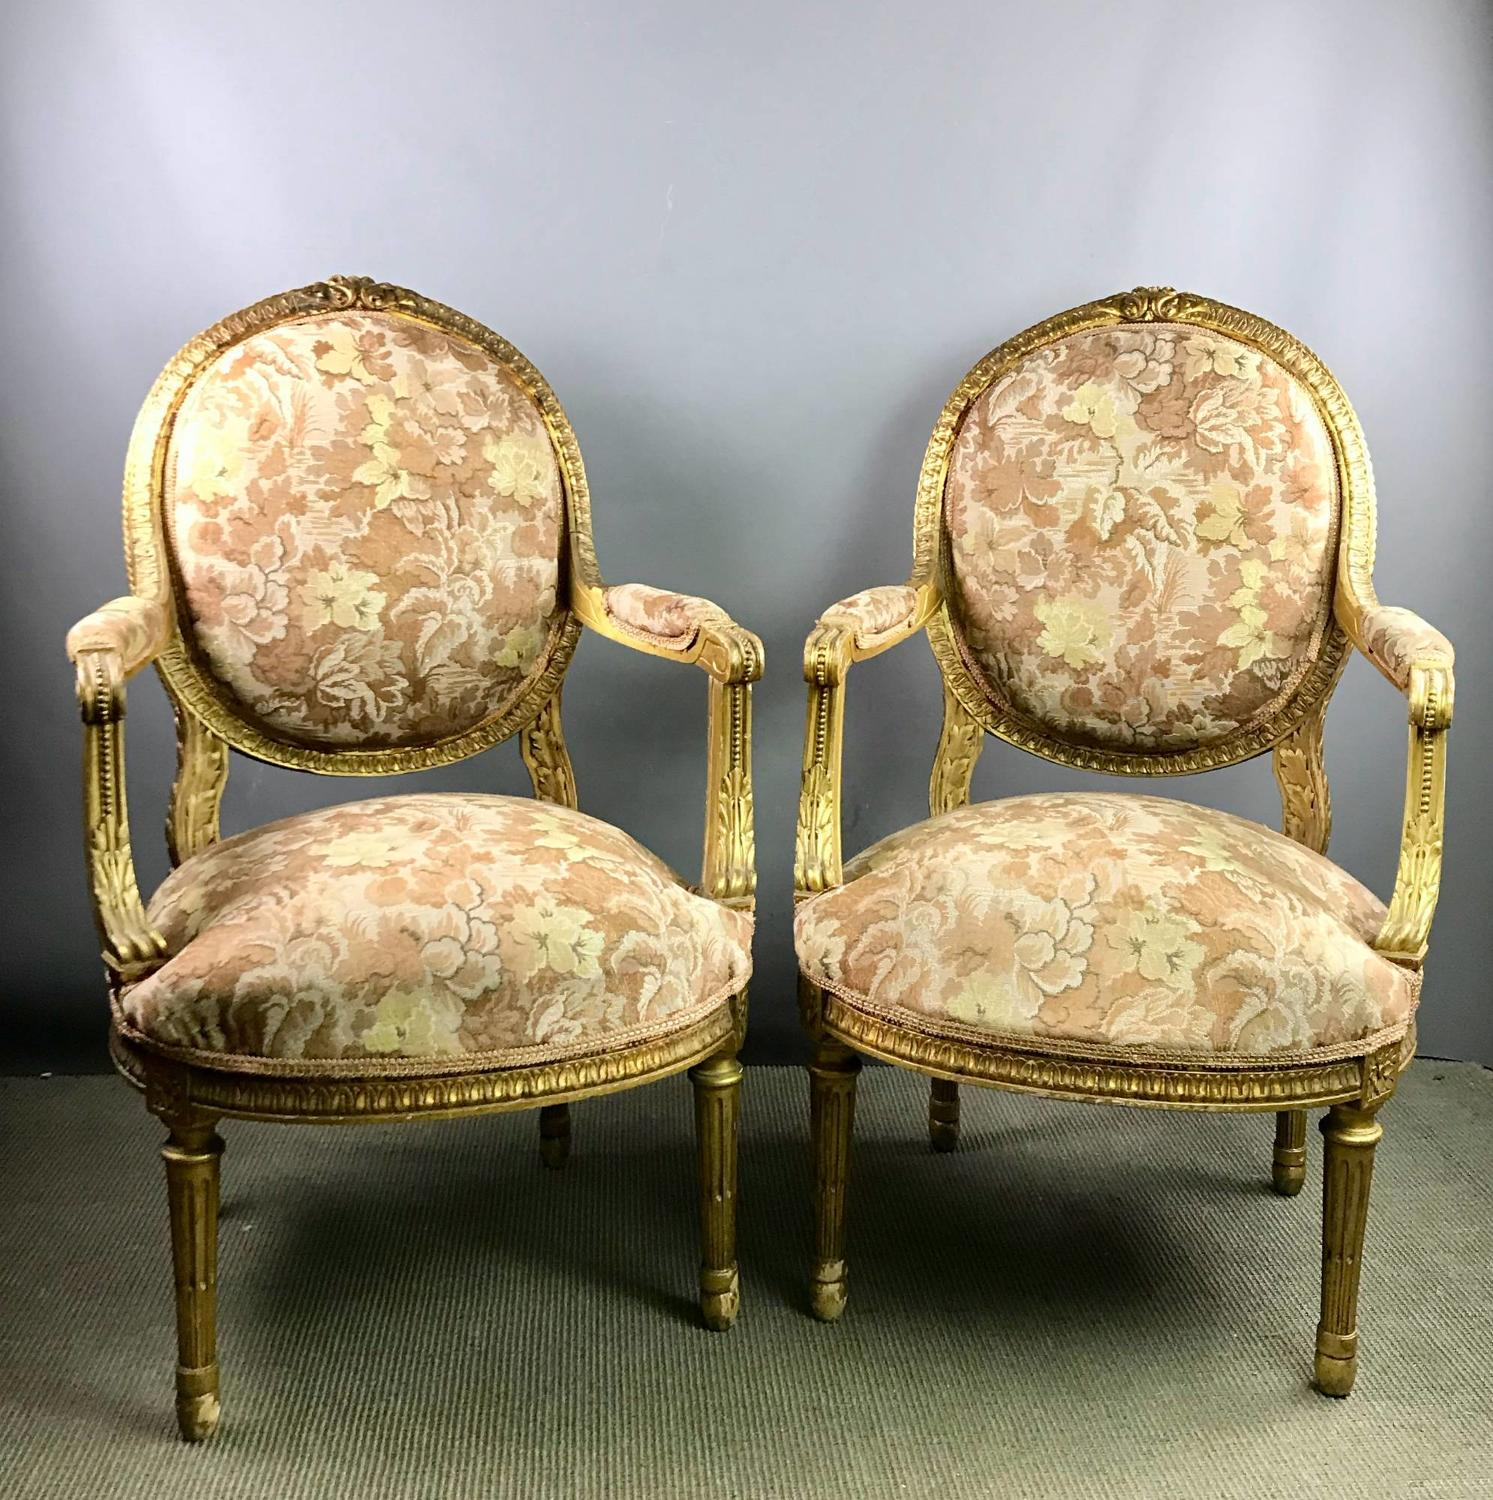 Pair of Giltwood Open Armchairs in Louis XVI Style